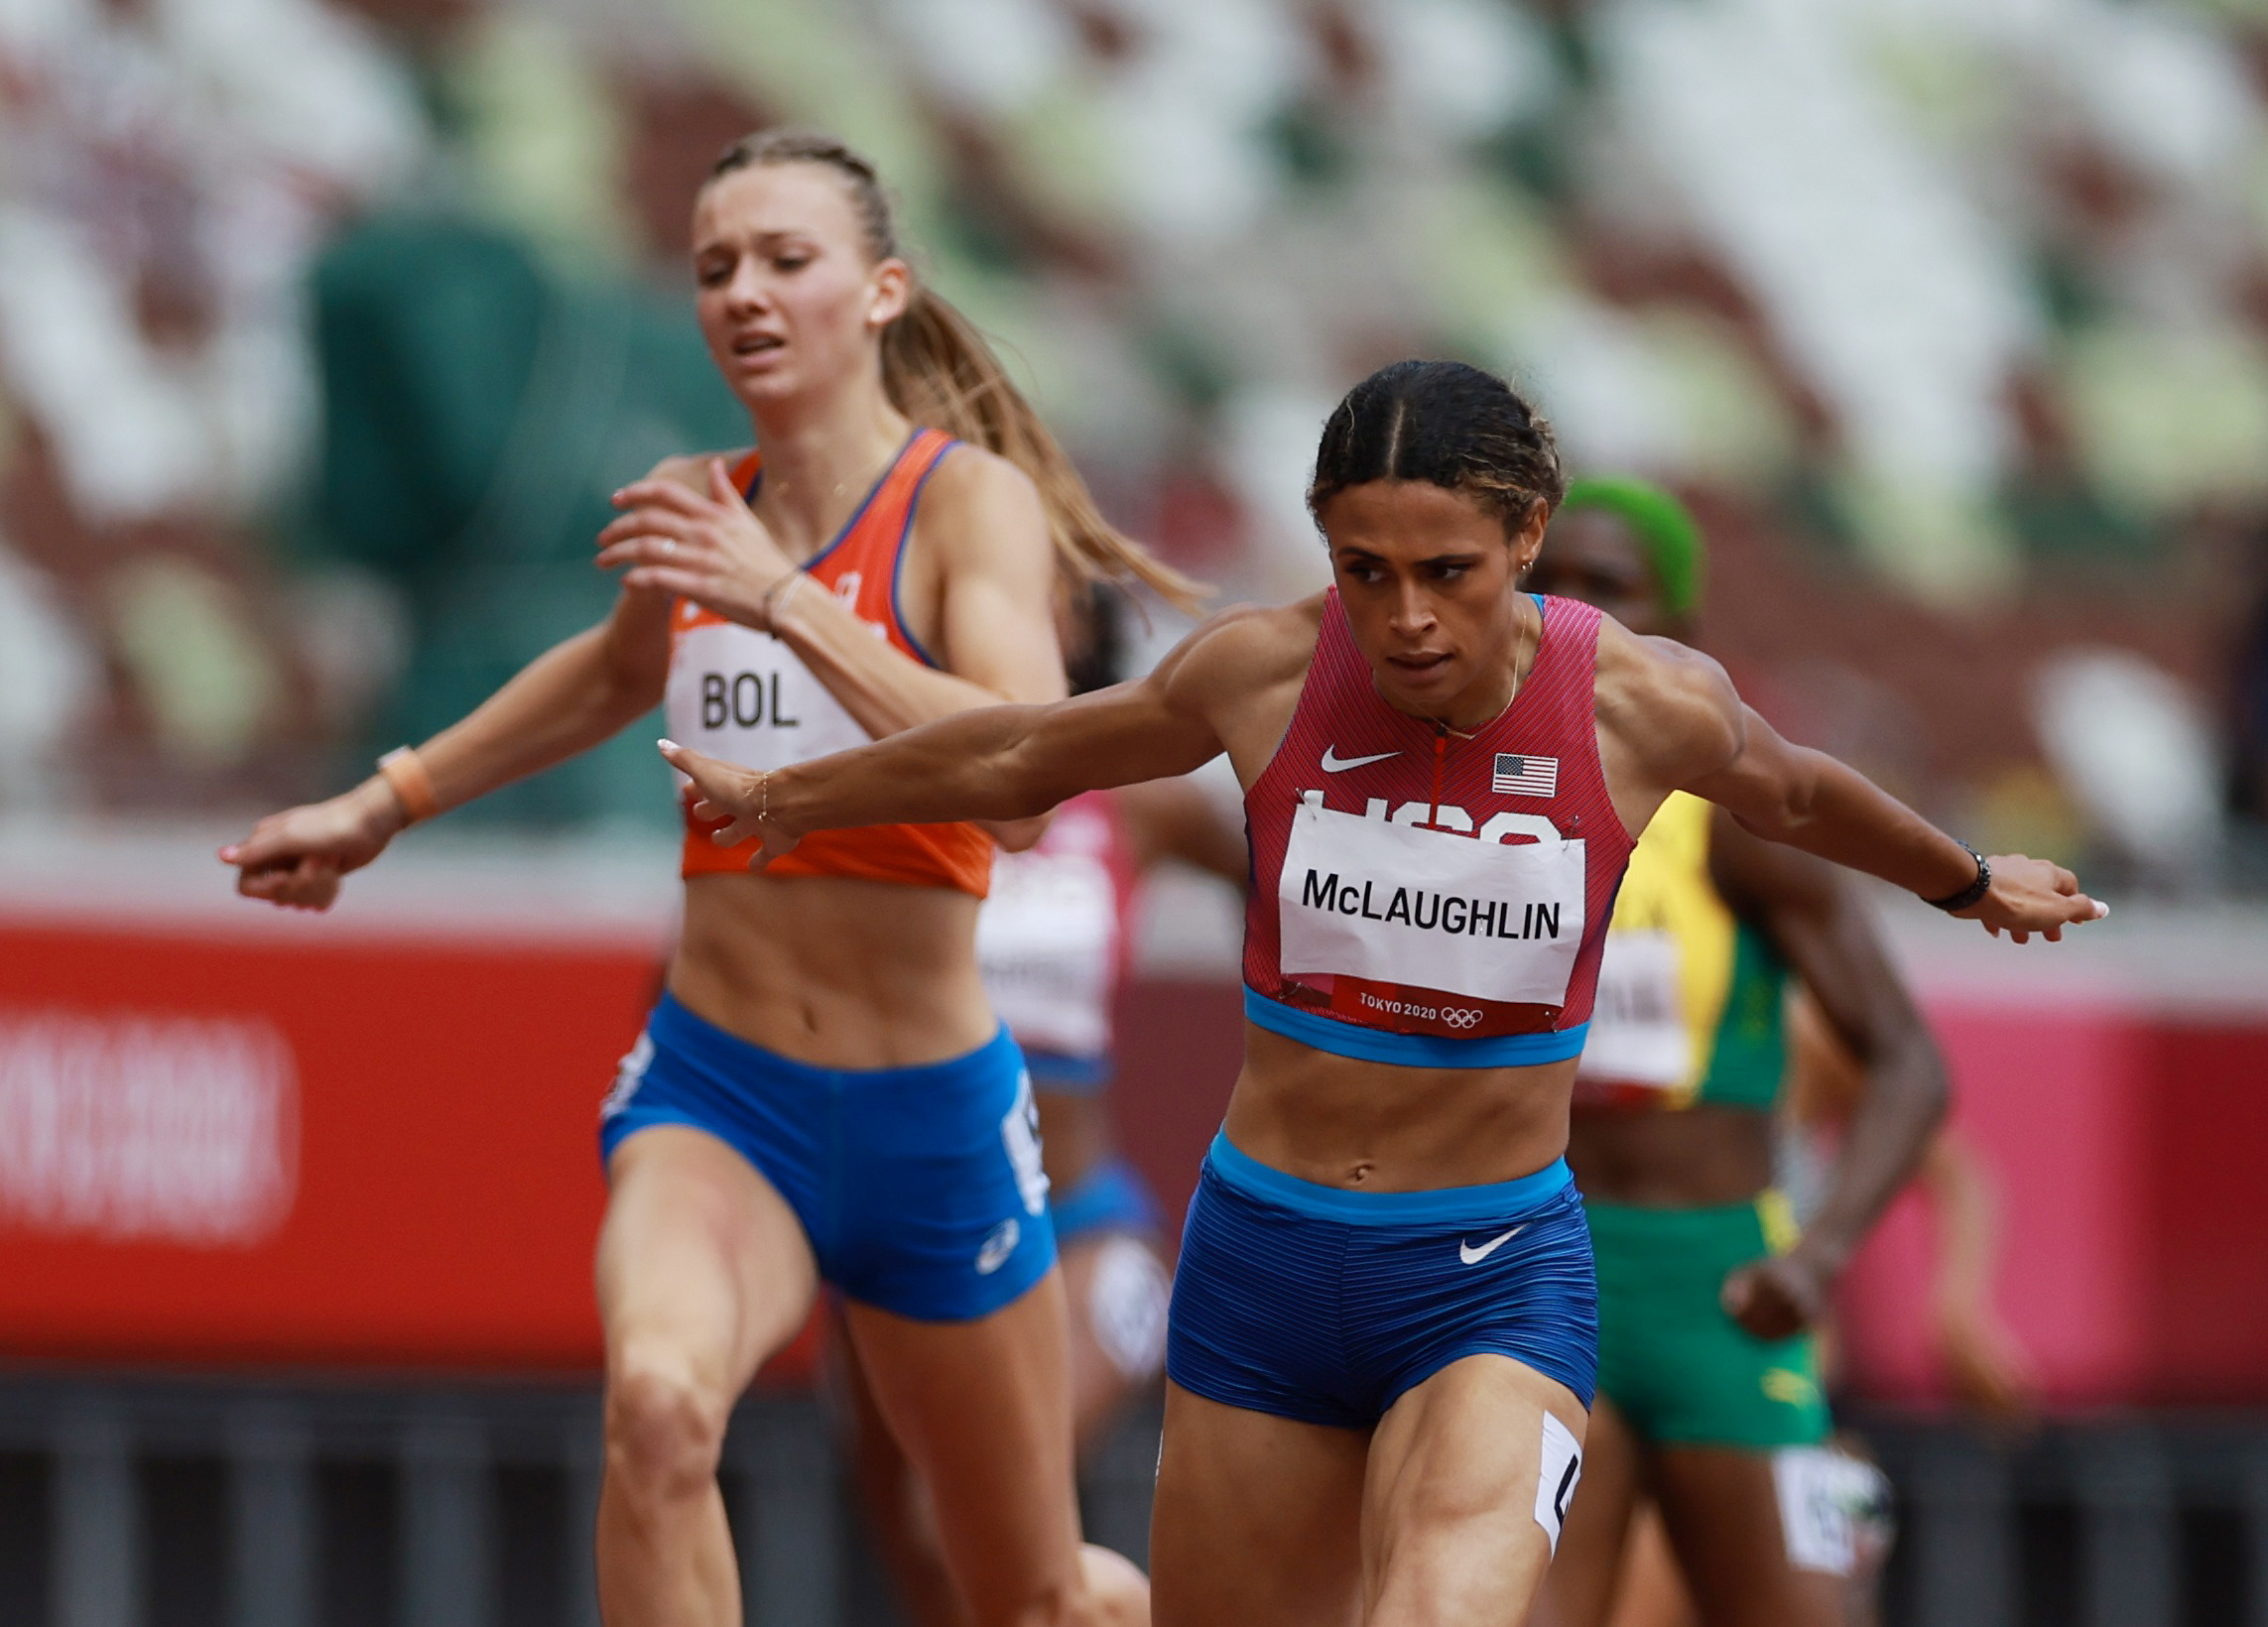 Tokyo 2020 Olympics - Athletics - Women's 400m Hurdles - Final - Olympic Stadium, Tokyo, Japan - August 4, 2021. Sydney McLaughlin of the United States crosses the line to win gold REUTERS/Kai Pfaffenbach